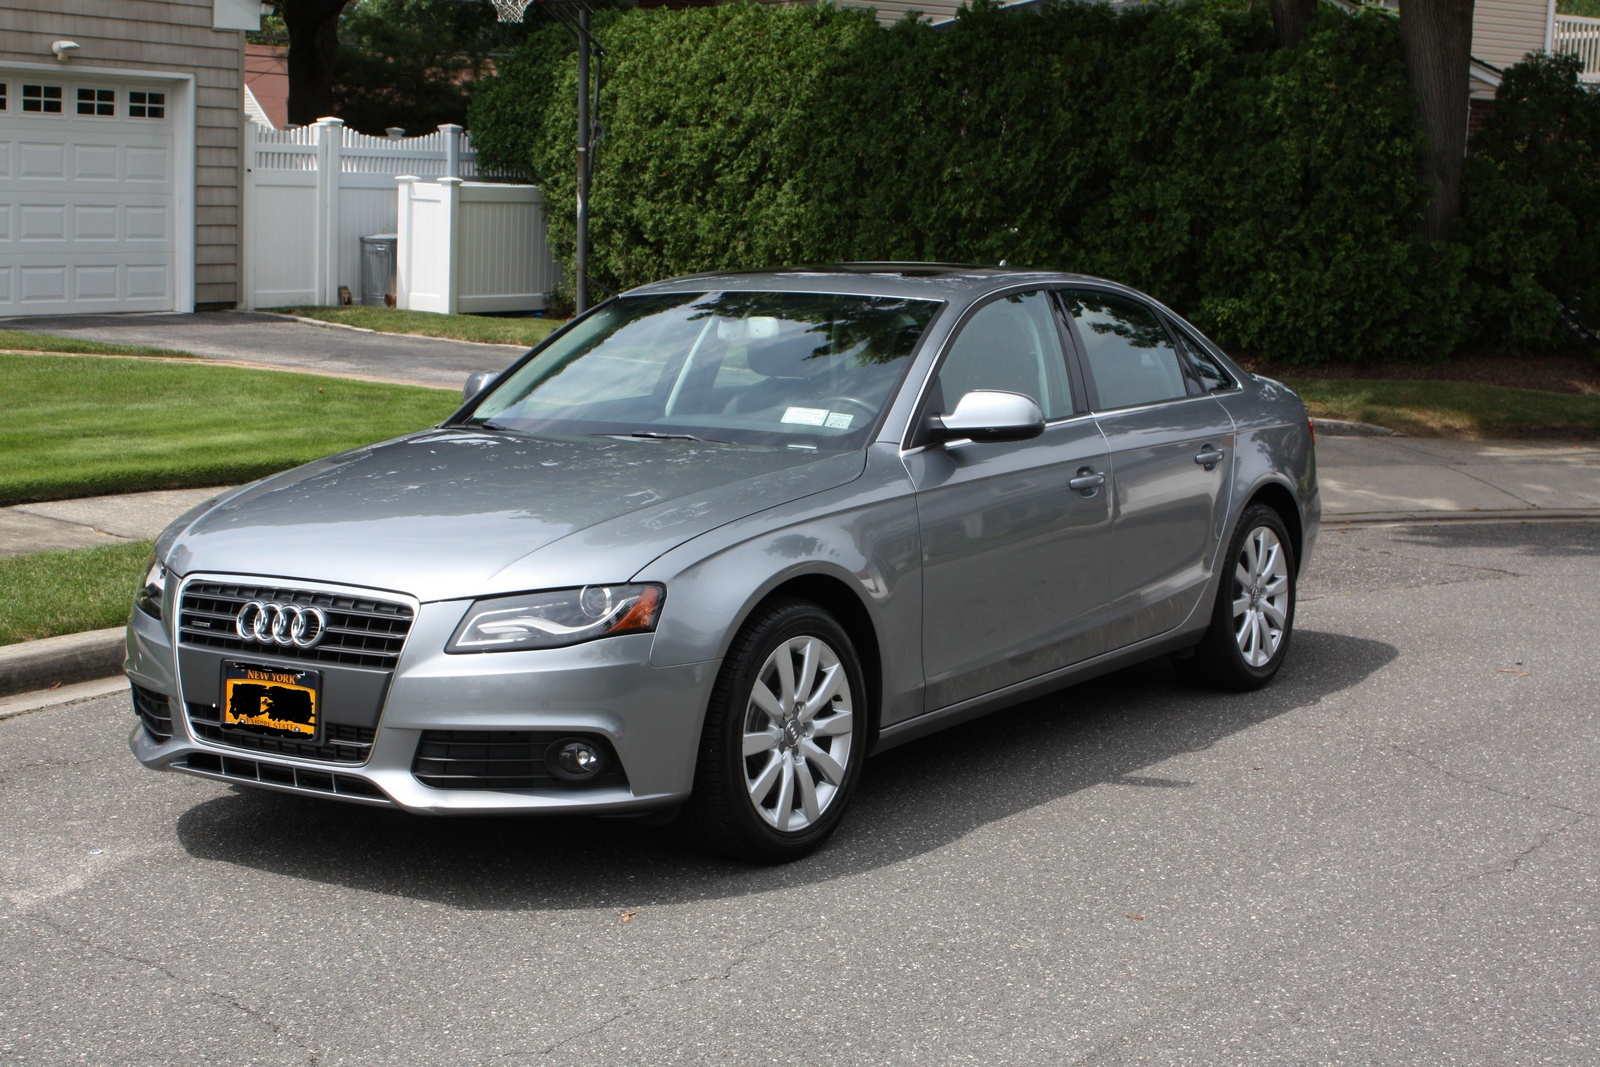 Used Audi A4 Avant For Sale  CarGurus